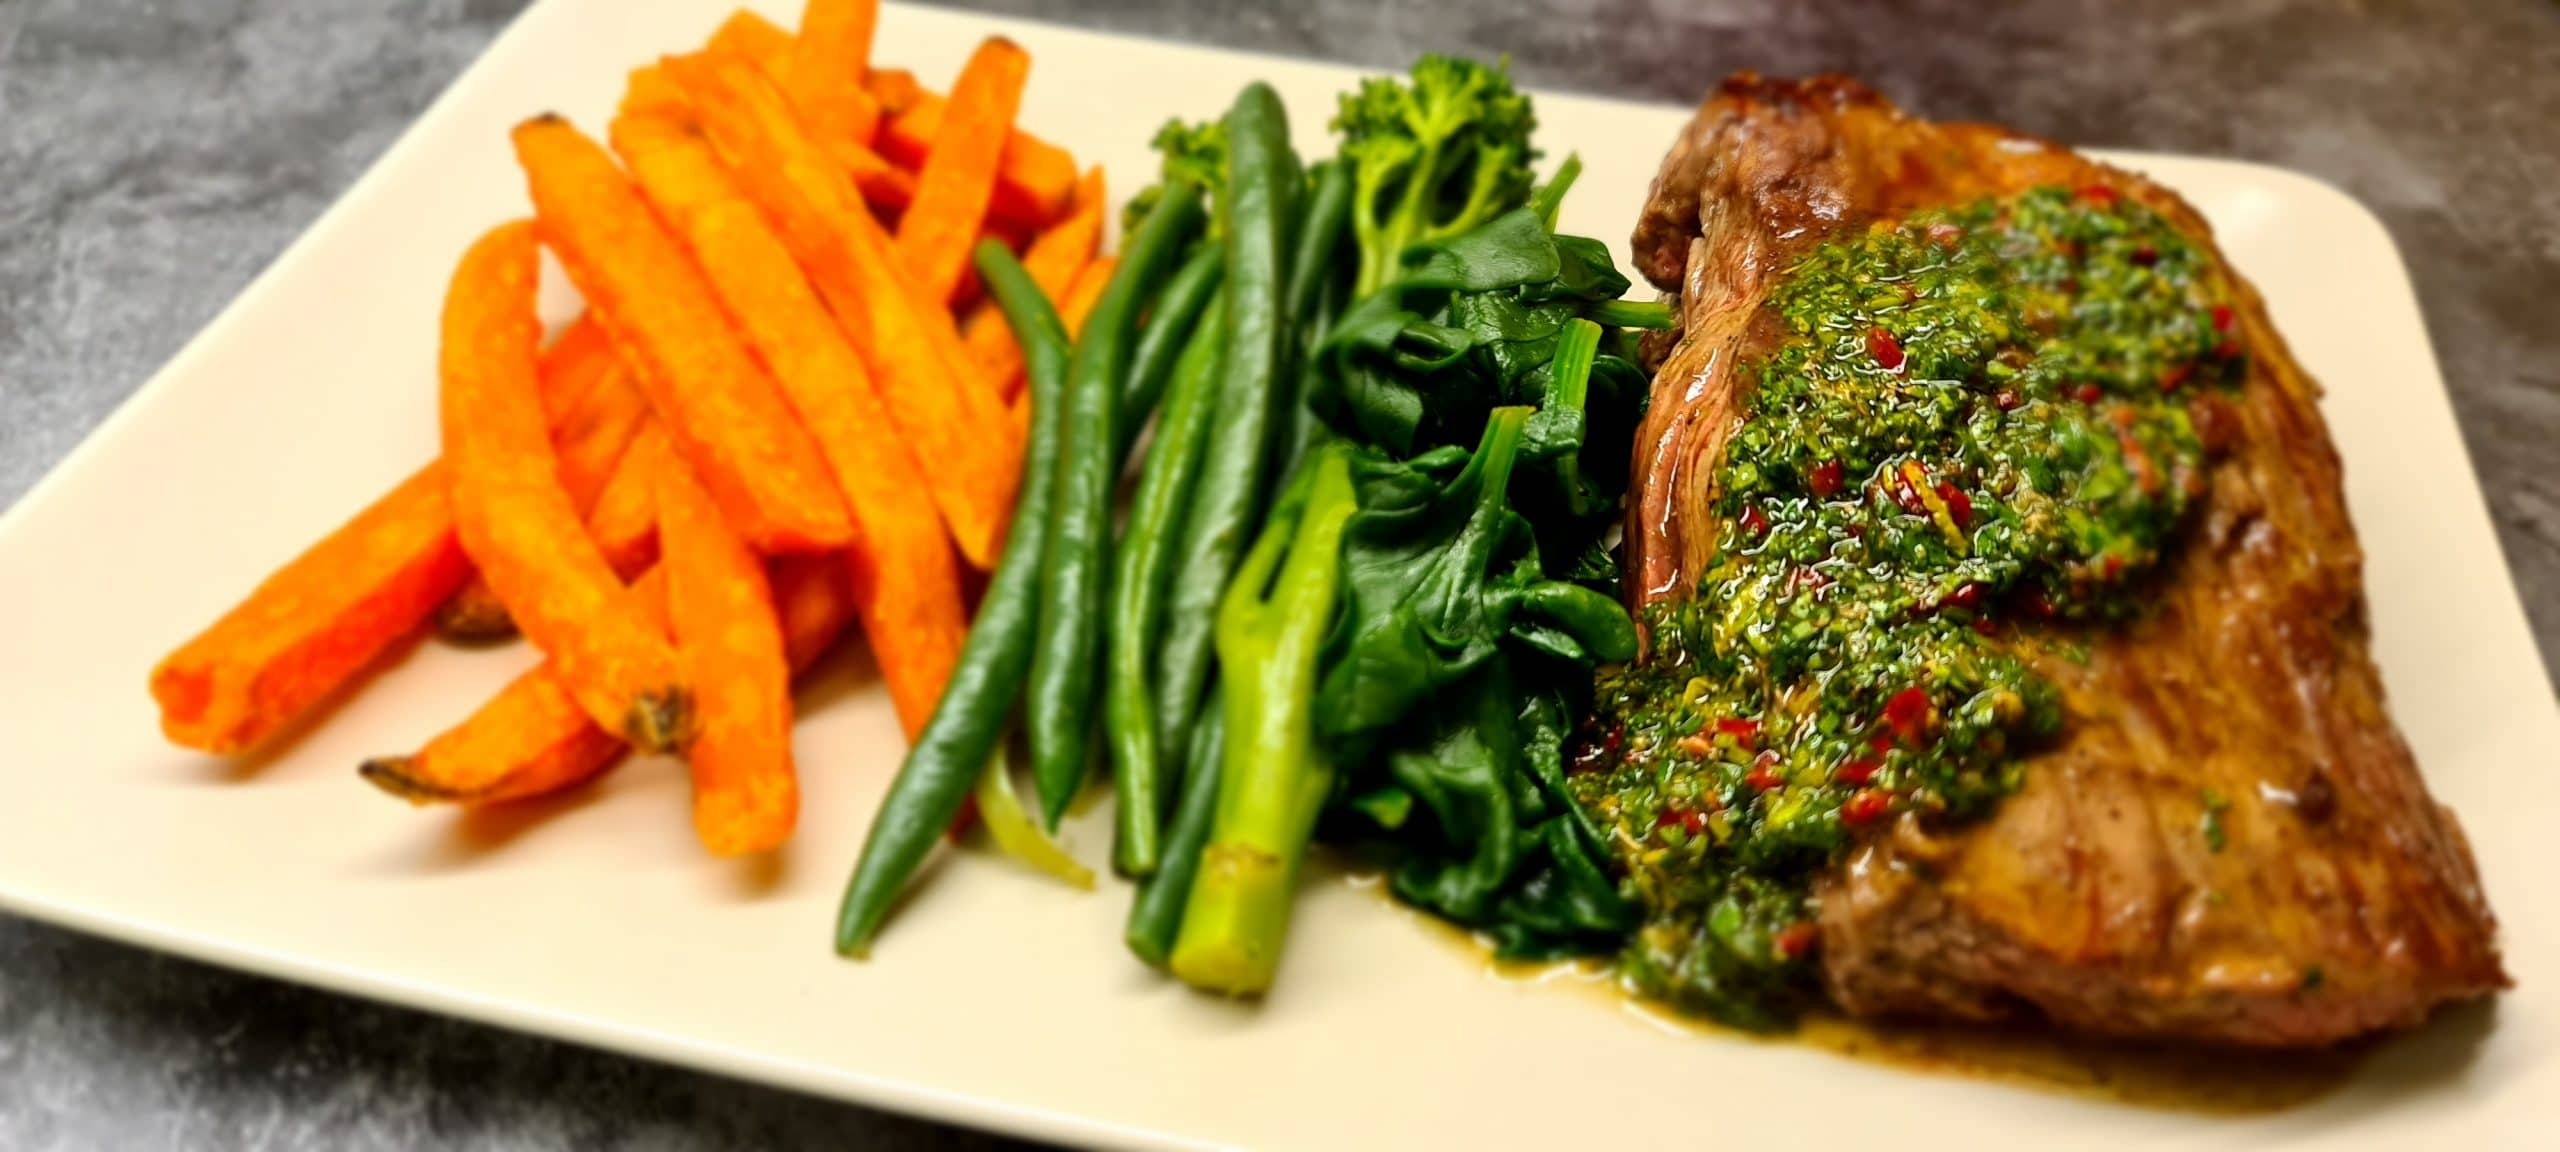 You are currently viewing Chimichurri Sauce